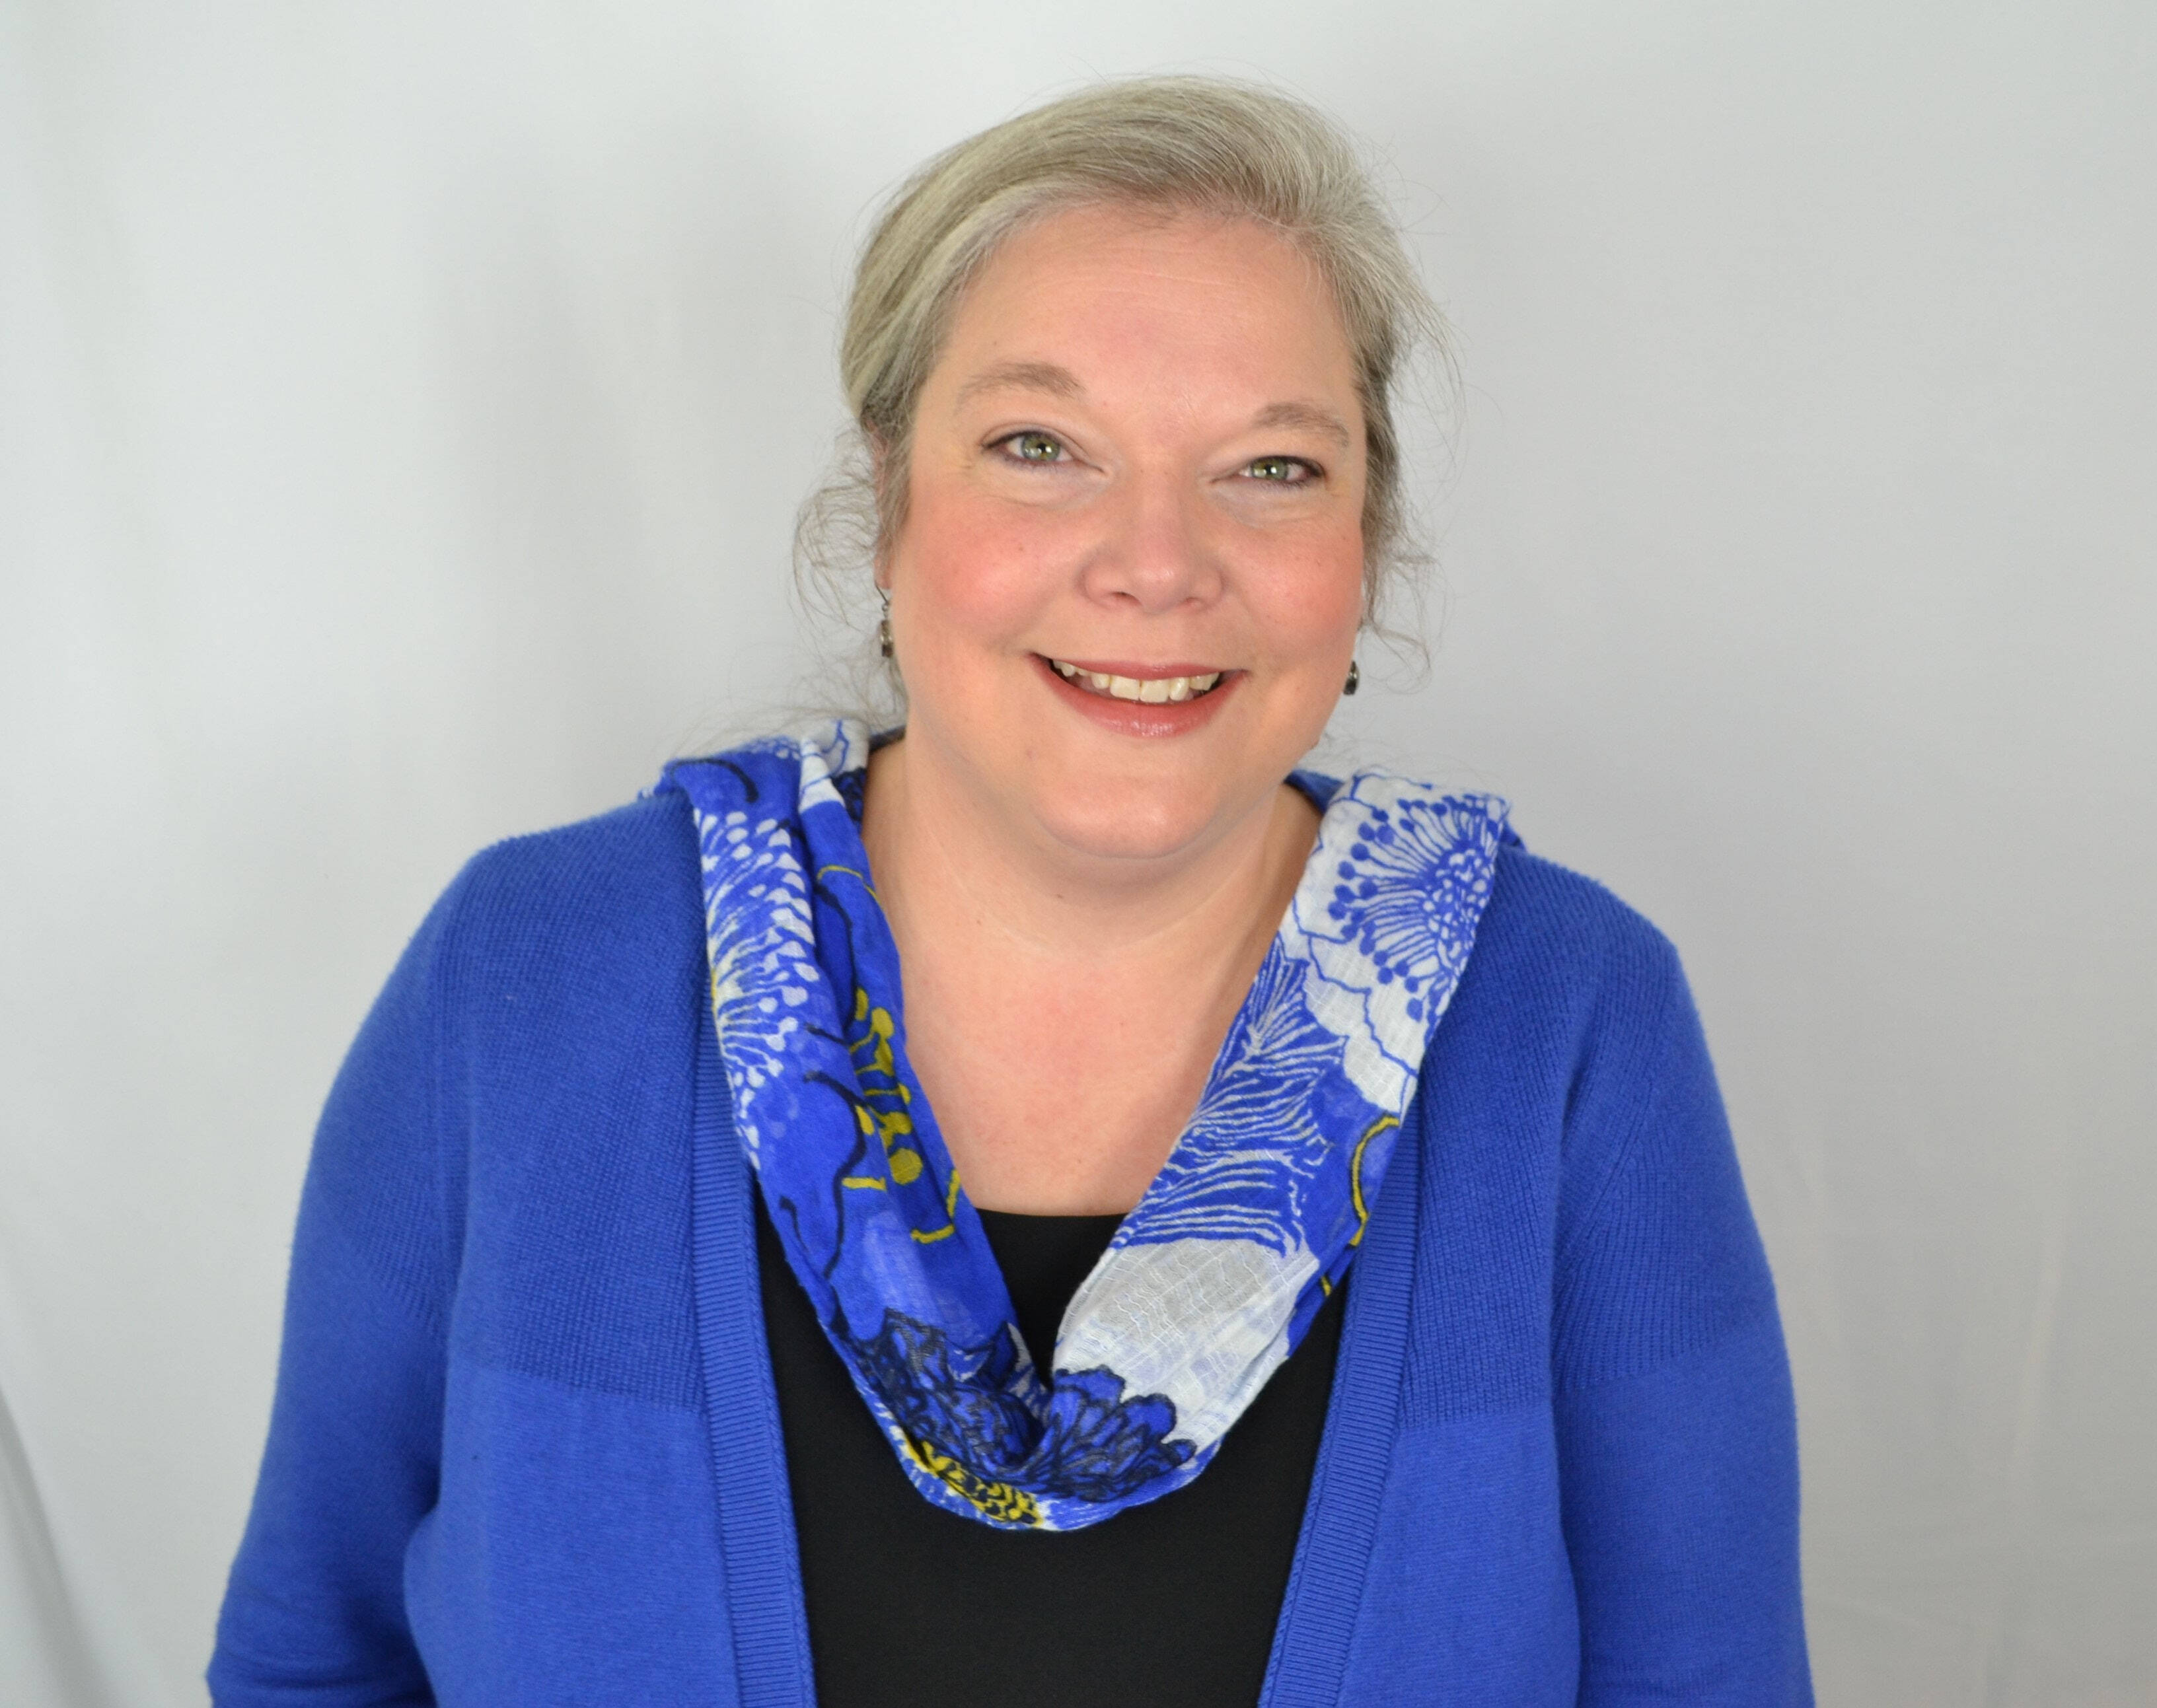 Virginia Business Systems Announces Monica Wilmore's Appointment to Cytracom's Partner Advisory Council